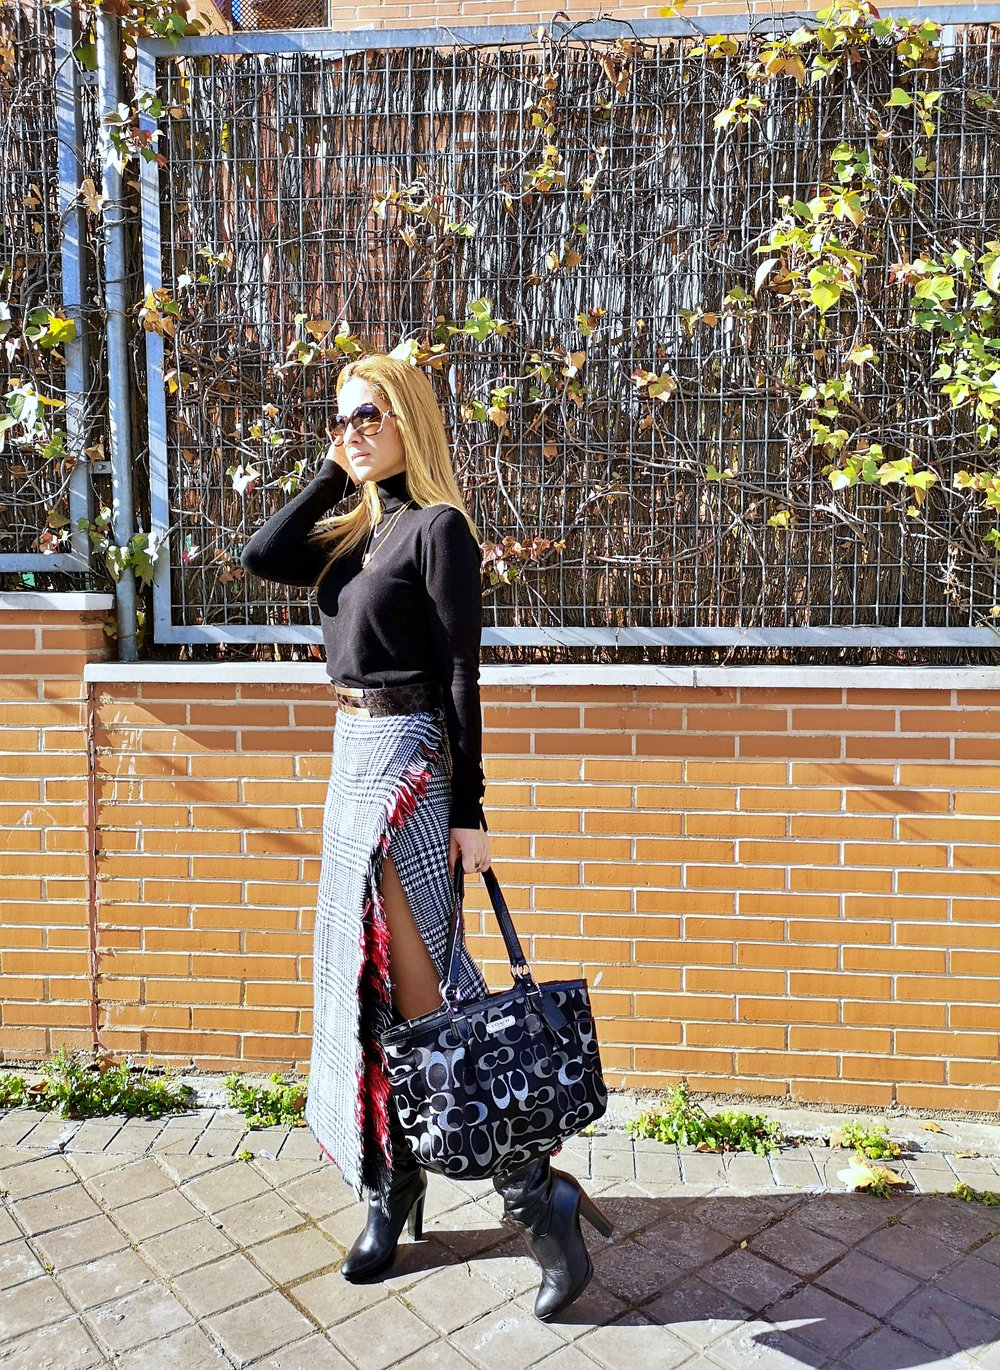 OUTFIT DETAILS: Blanket scarf: NEW YORKER (old); Sweater: ZARA (Au/W ´18-´19); Boots: ZARA (old); Belt: ROBERTO VERINO; Bag: COACH; Necklace: MANGO (sales); Sunnies: GUESS;